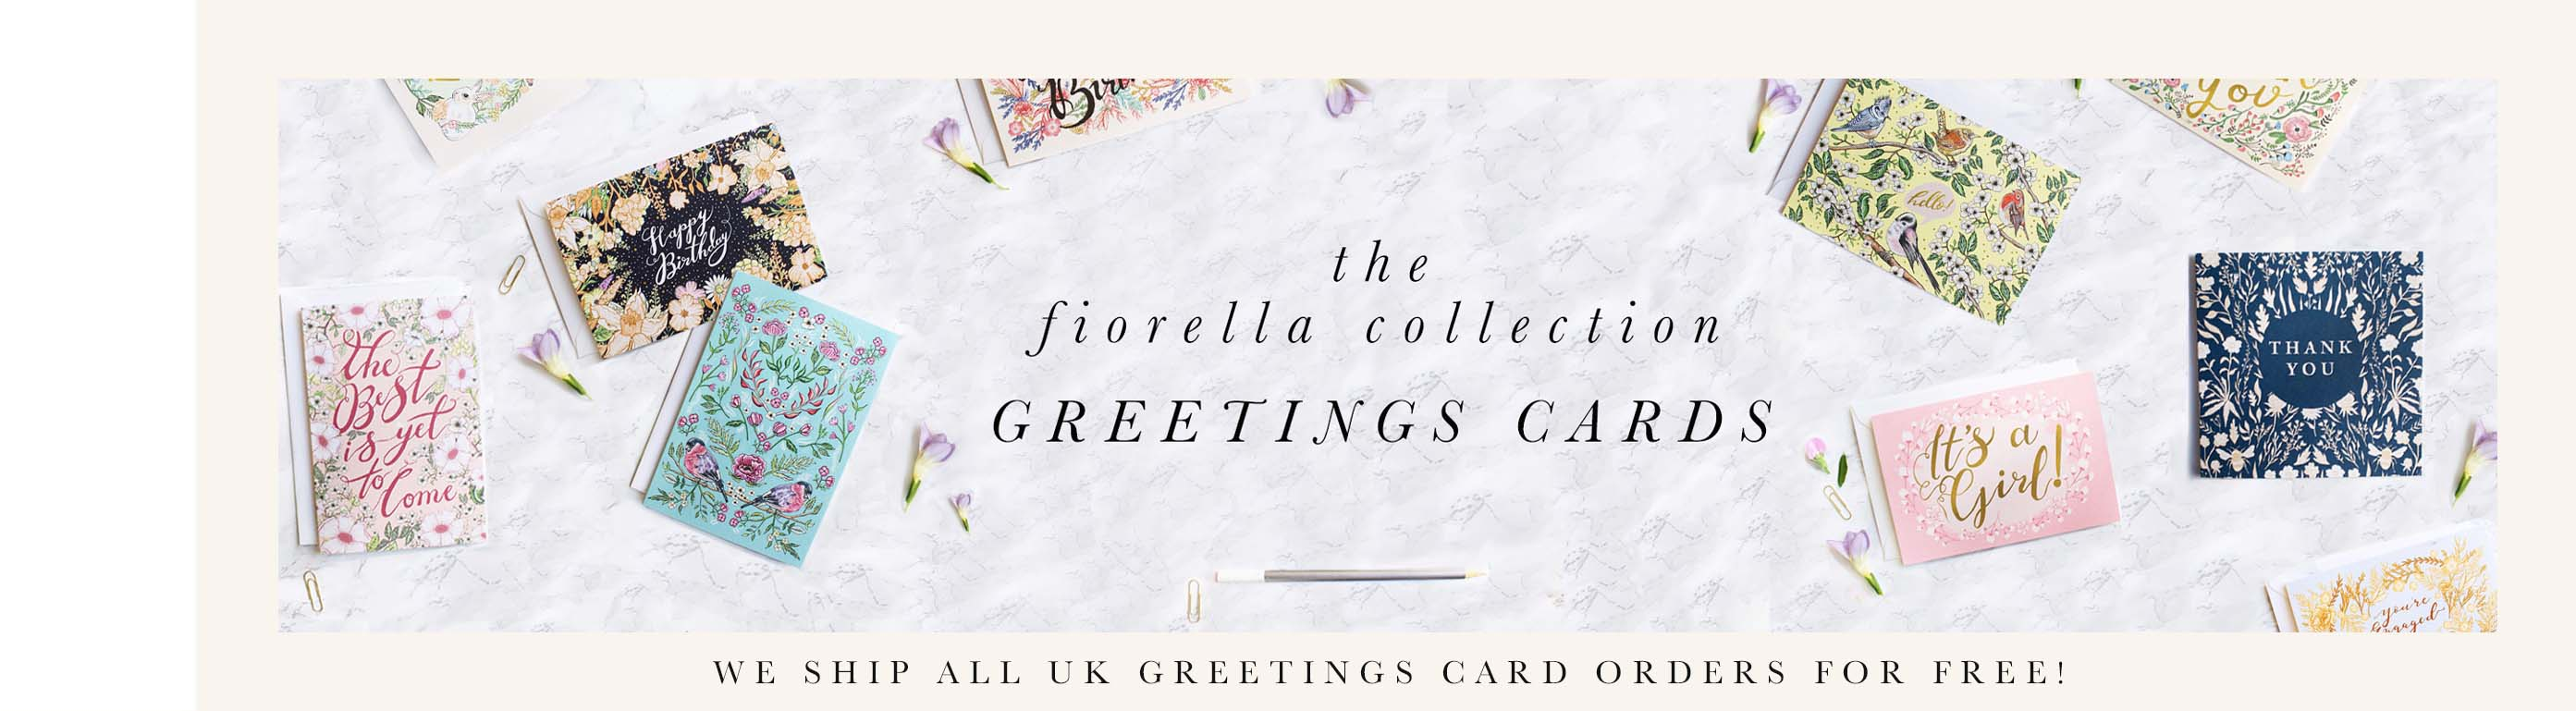 Greetings cards katie craven luxury cushions wallpaper greetings cards kristyandbryce Images